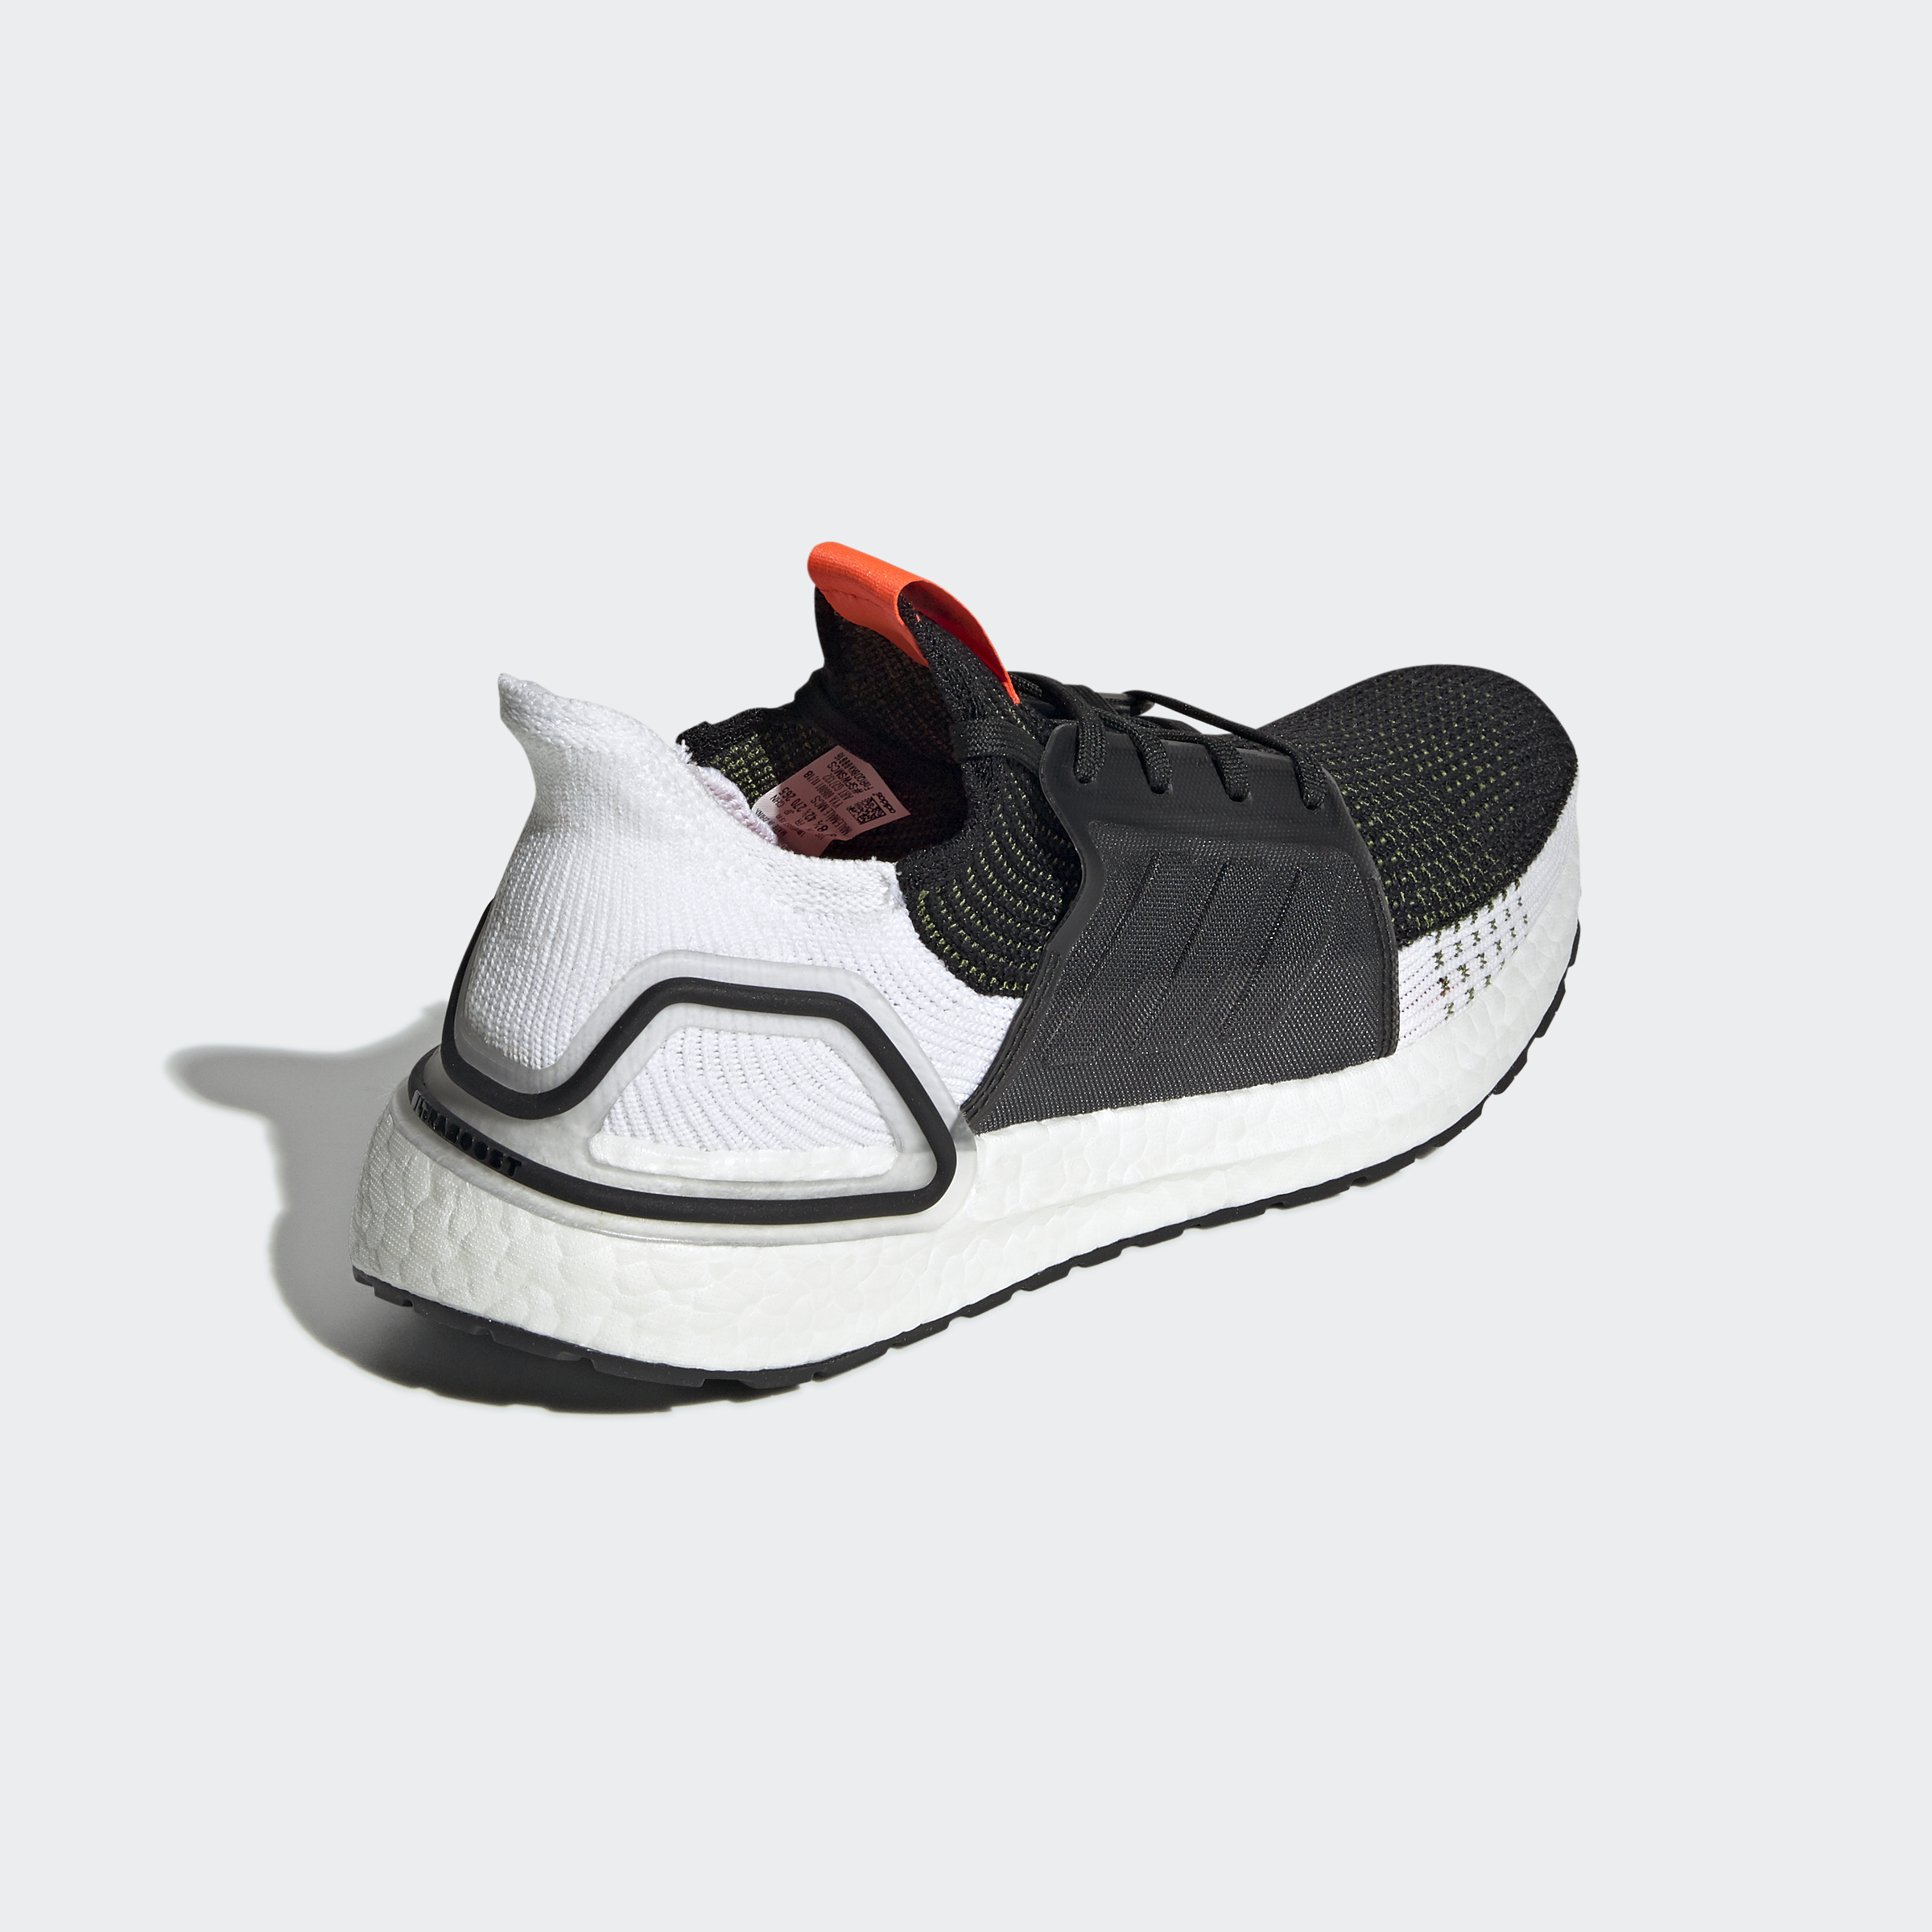 adidas-Ultraboost-19-Shoes-Athletic-amp-Sneakers thumbnail 63